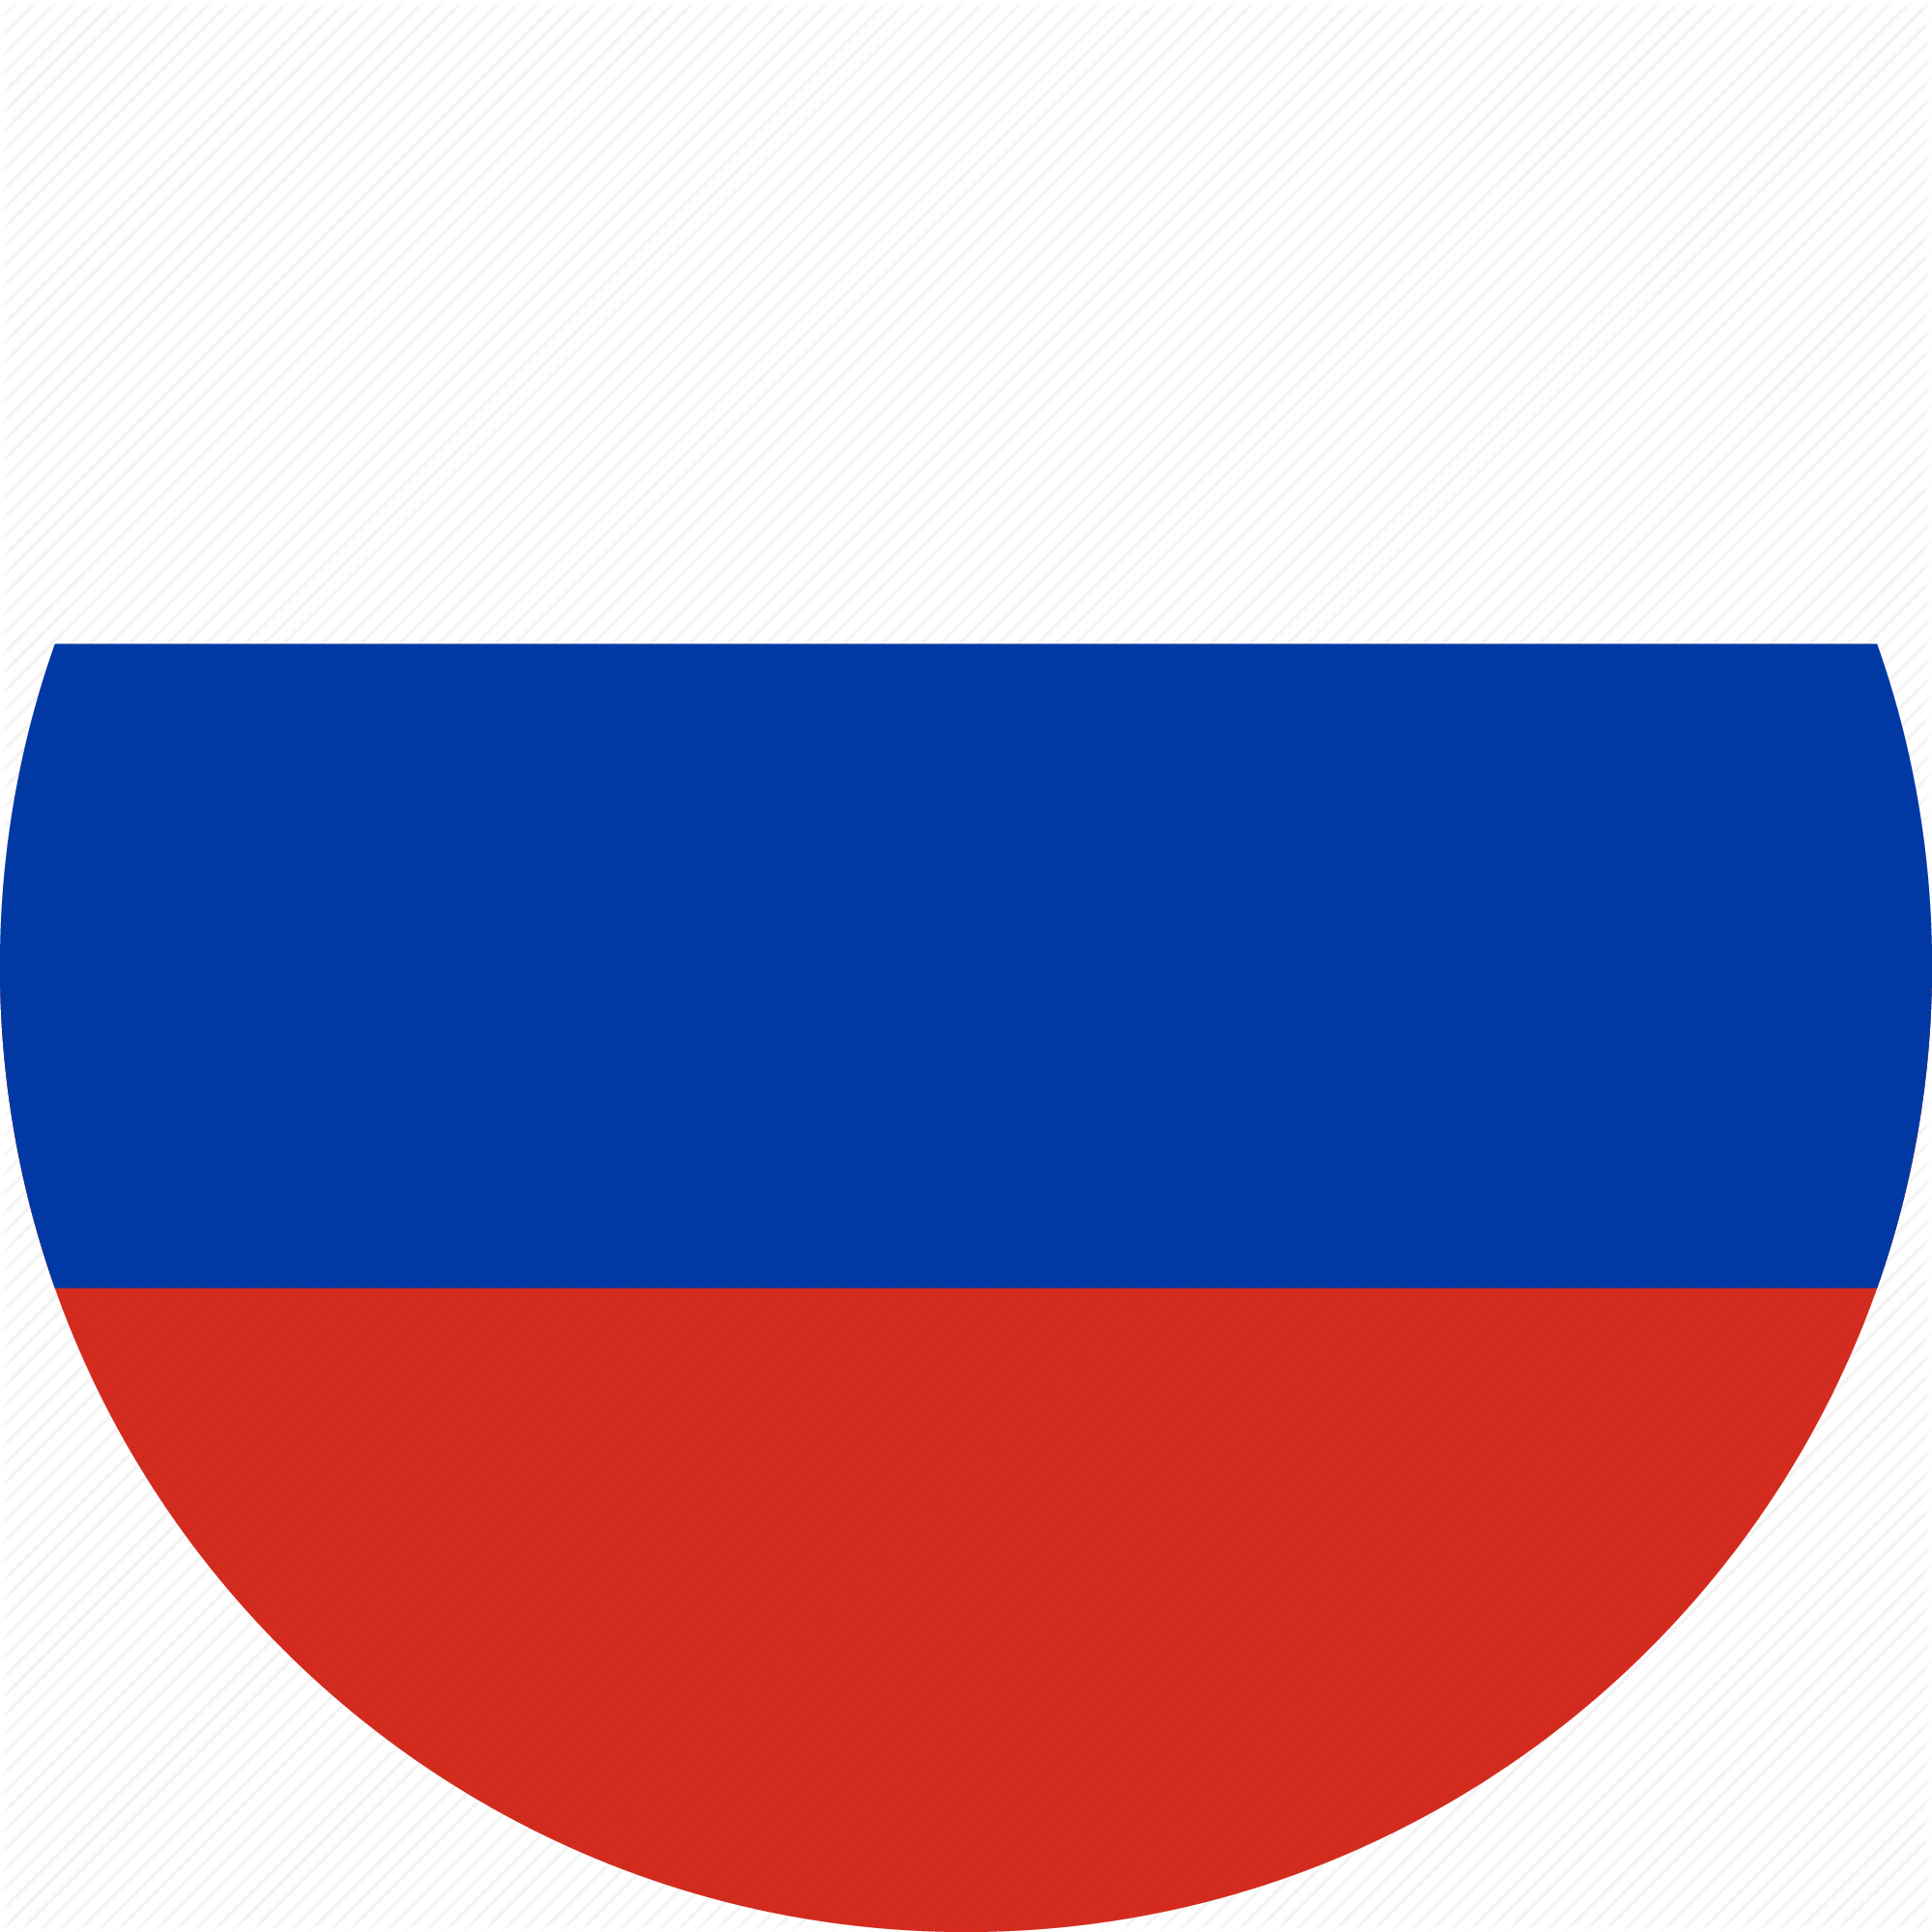 Russian flag png. Russia transparent images pluspng